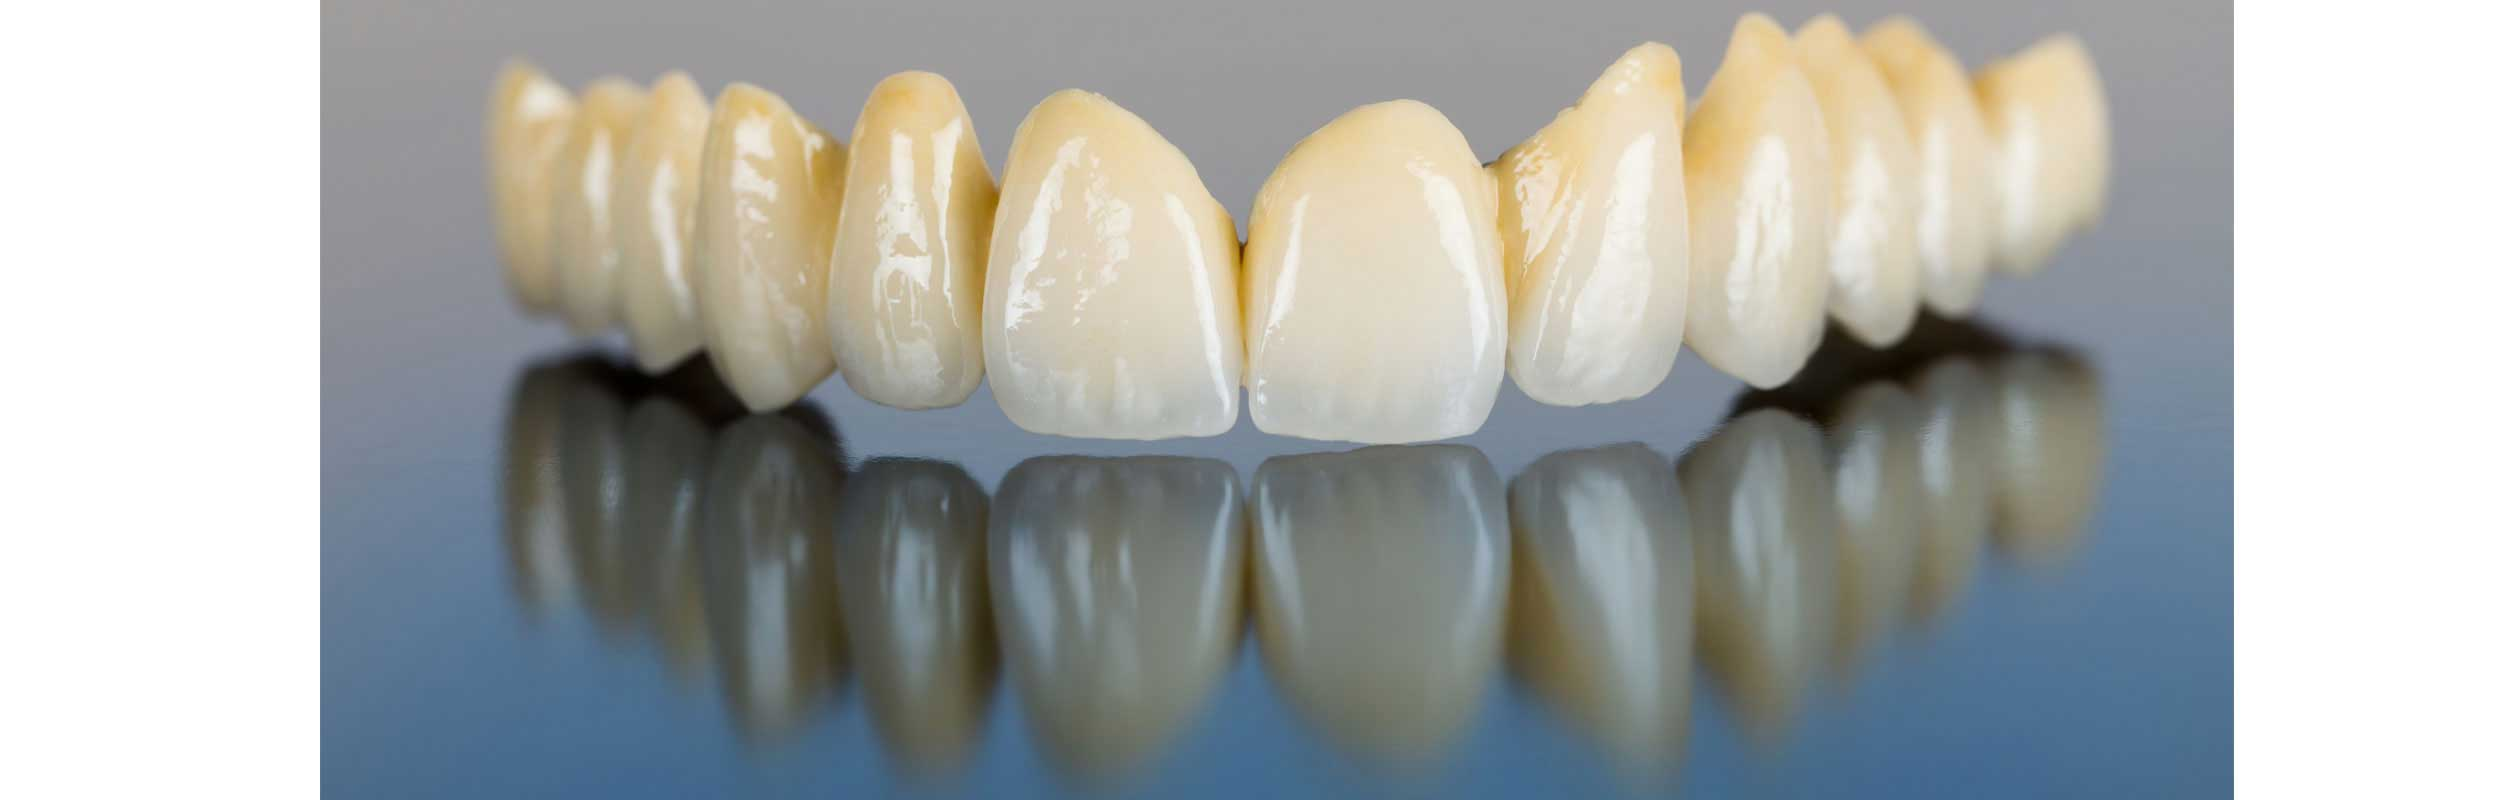 Crowns and bridges at Belle Meade Dental - Nashville, TN